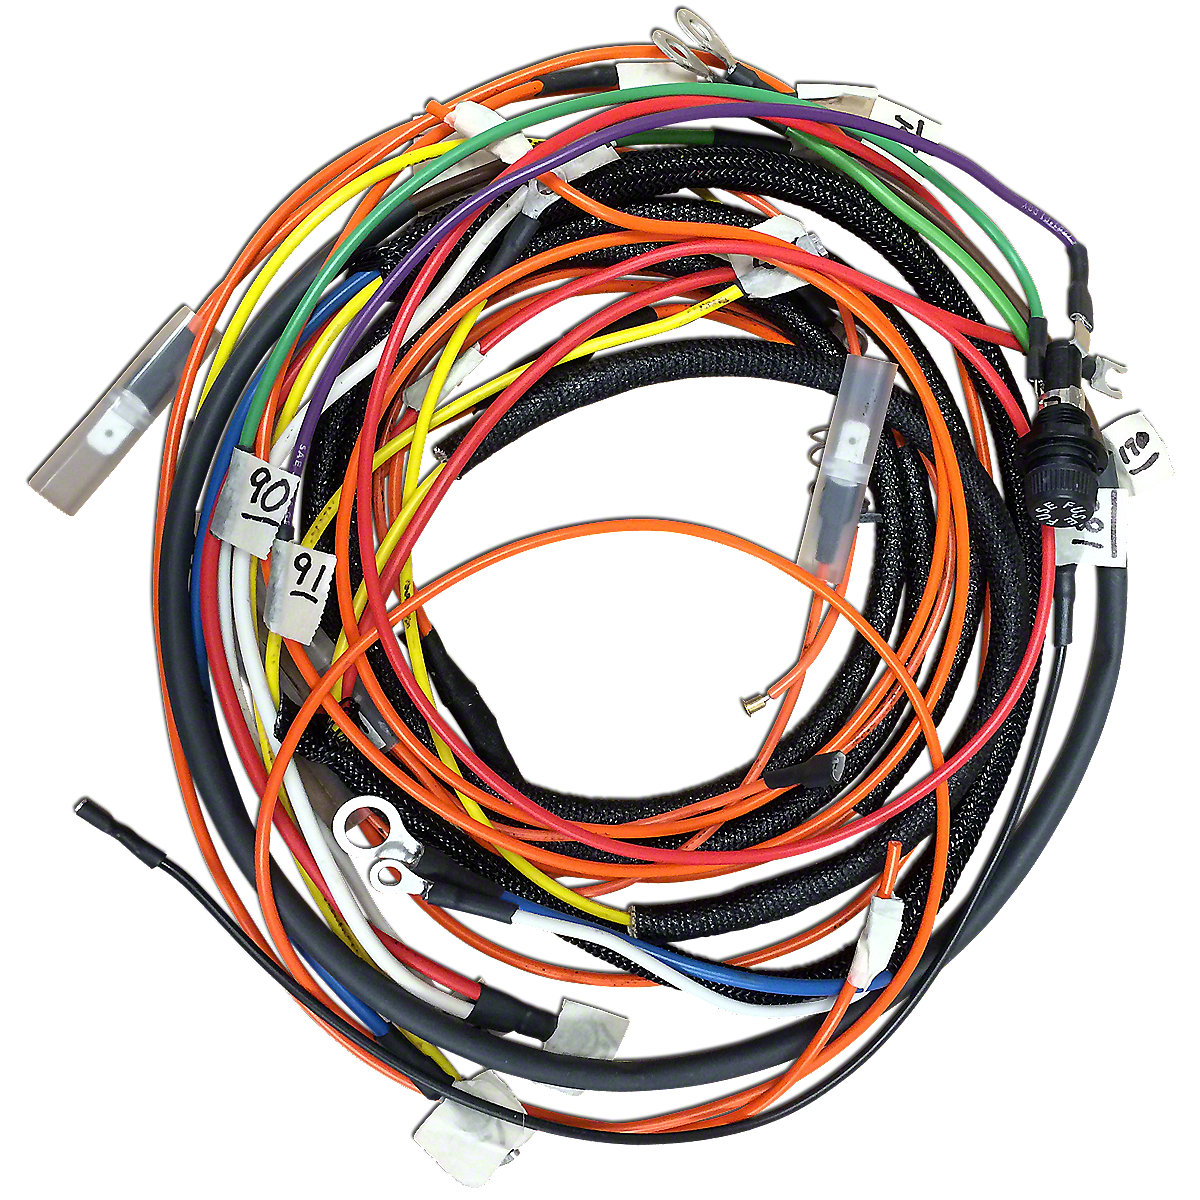 Lighting Wire Harness Kits Allis Chalmers Parts Oktractor Wiring Kit Series Ii